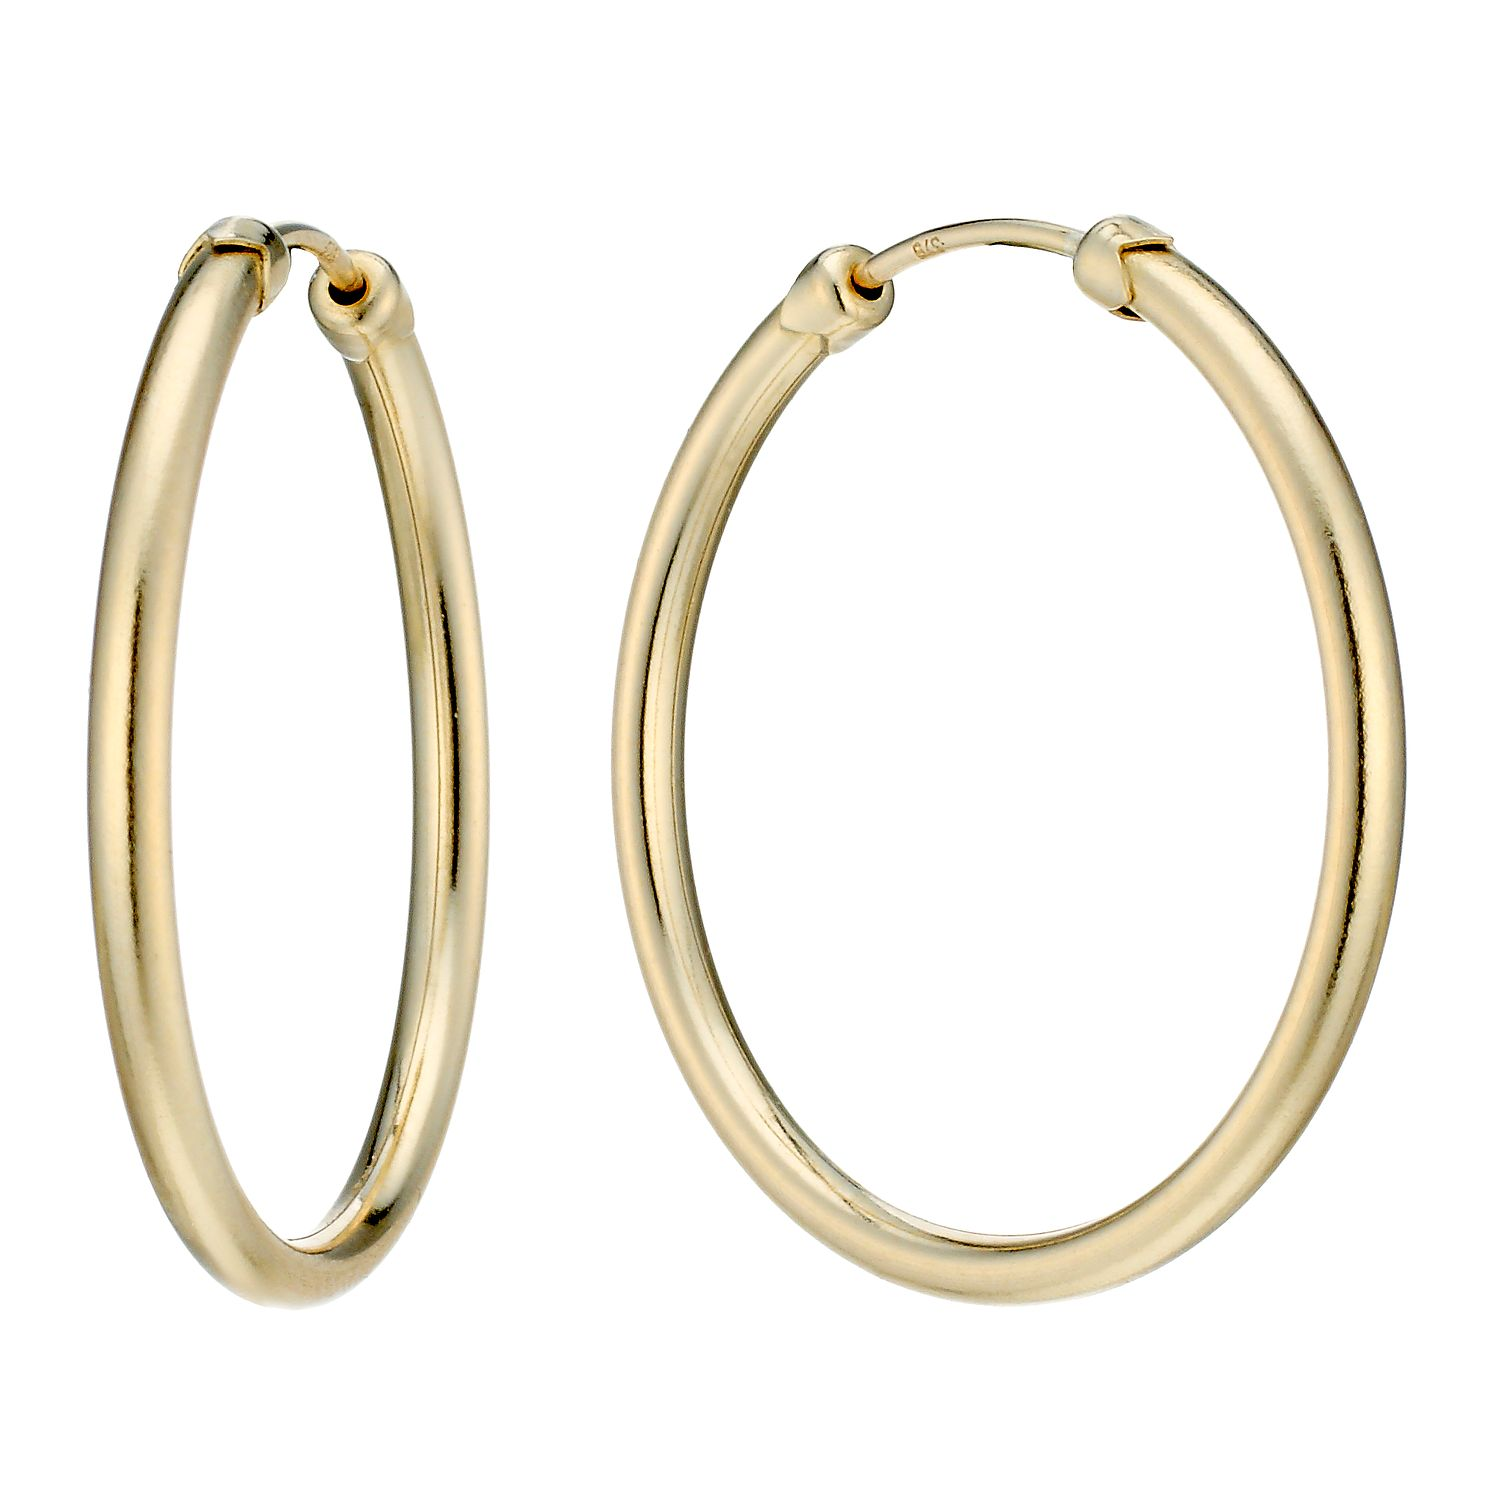 9ct Gold 22mm Medium Hoop Earrings - Product number 1750933